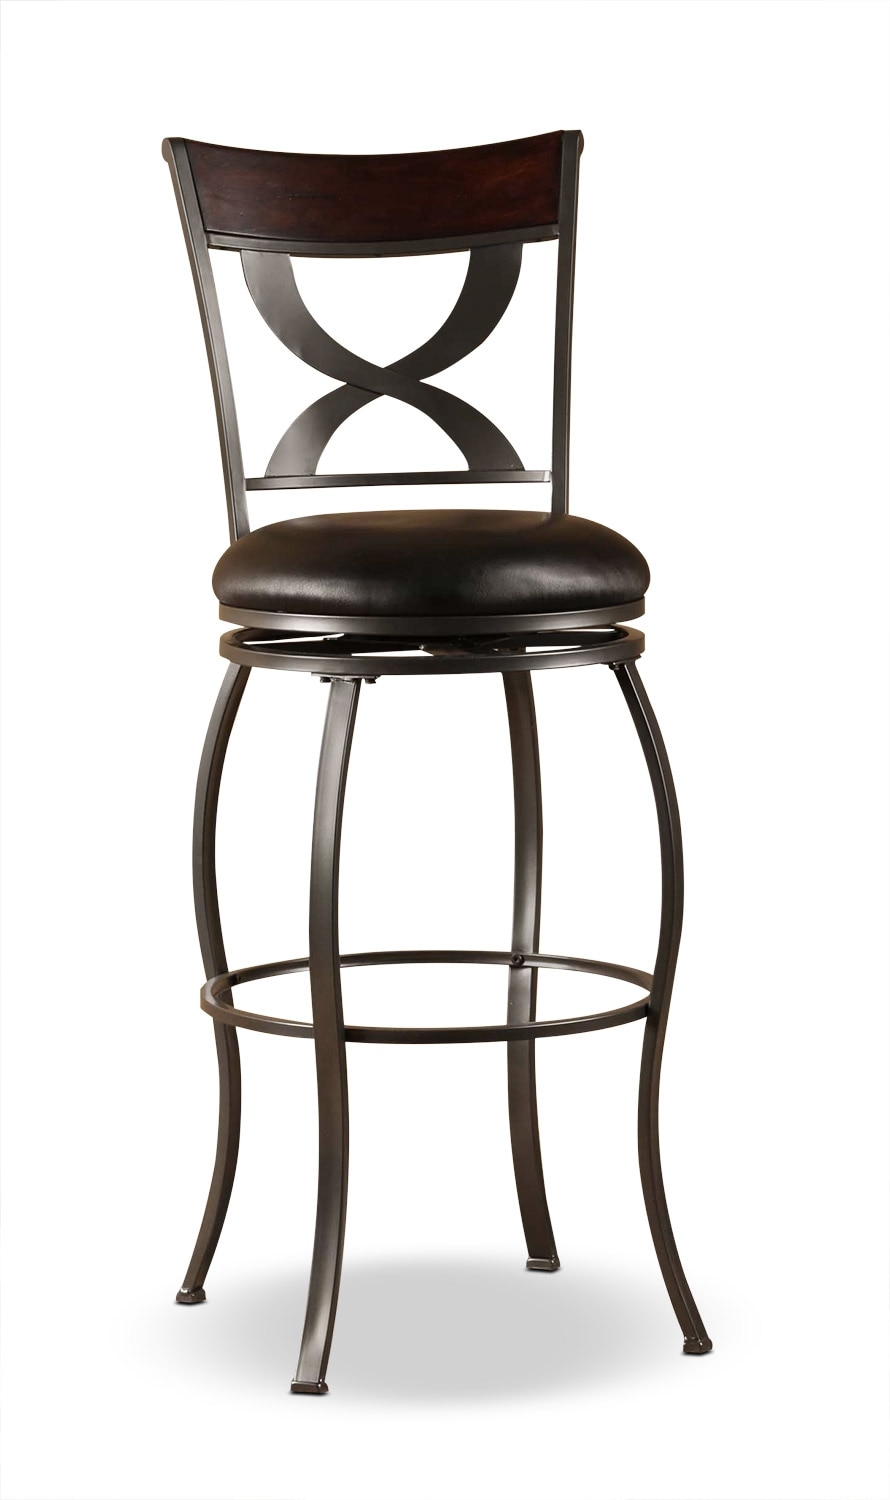 Stockport counter height swivel stool united furniture for Counter height bar stools